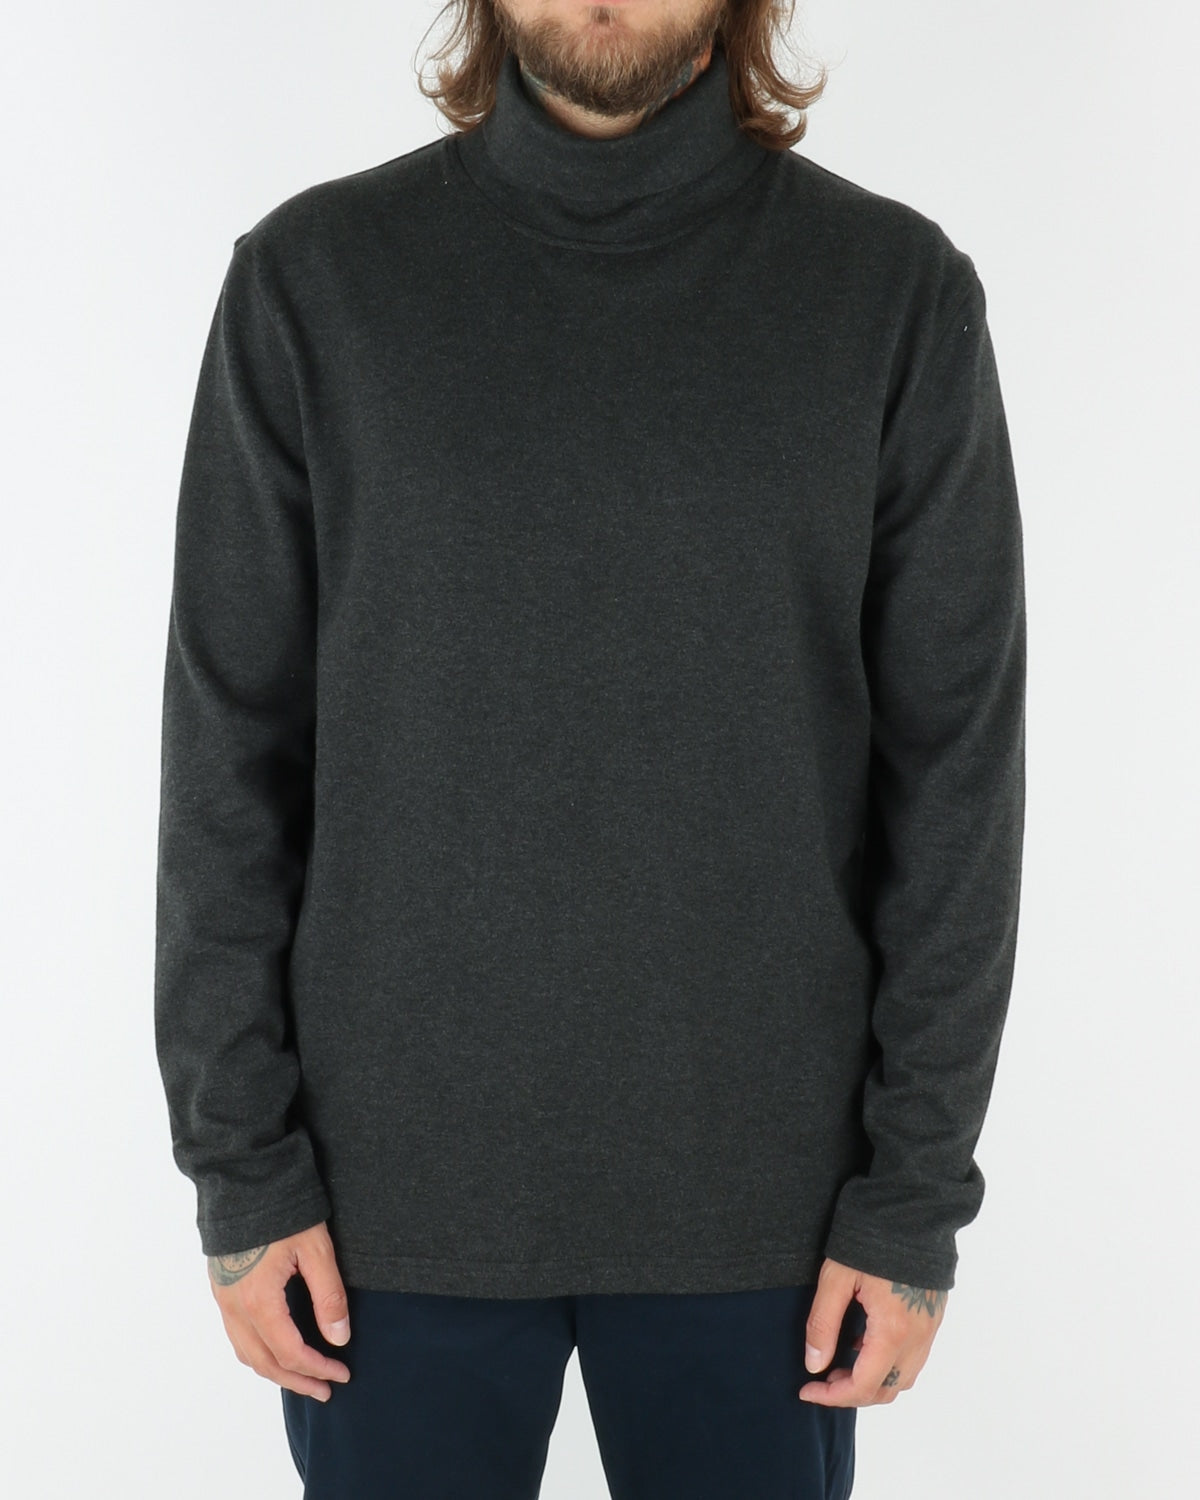 wac we are copenhagen_belushi roll neck_sweatshirt_dark grey melange_view_1_2